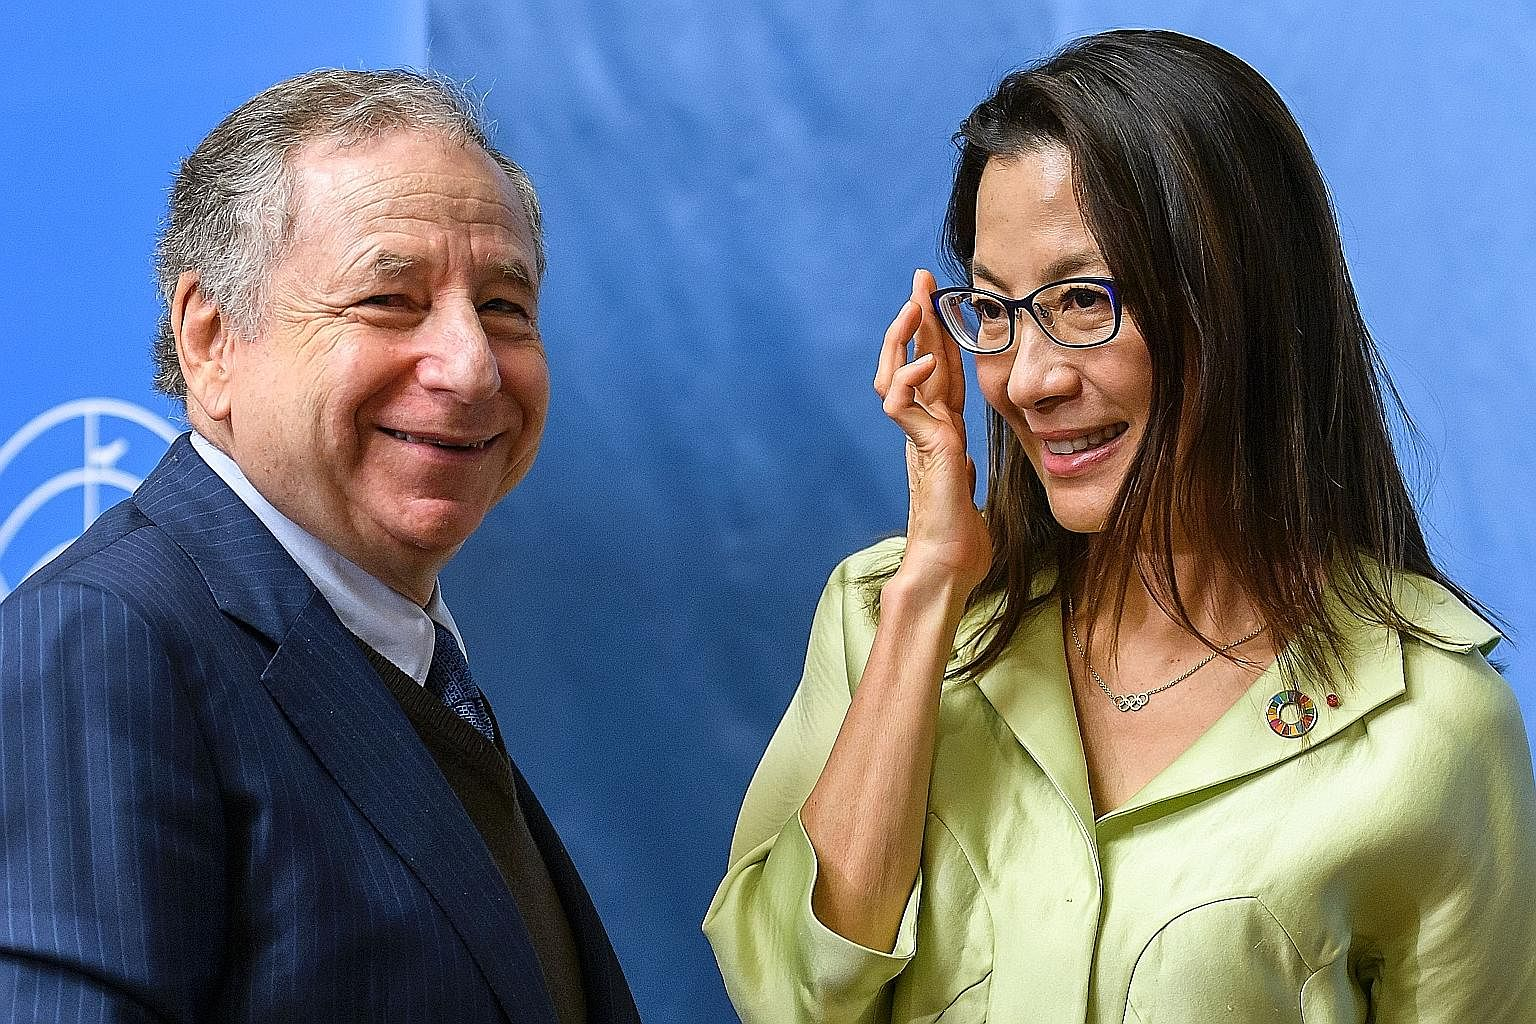 FIA president Jean Todt with his actress wife Michelle Yeoh at the Global Road Safety Film Festival last month. Todt believes F1 is lagging behind in providing entertainment for the common public.